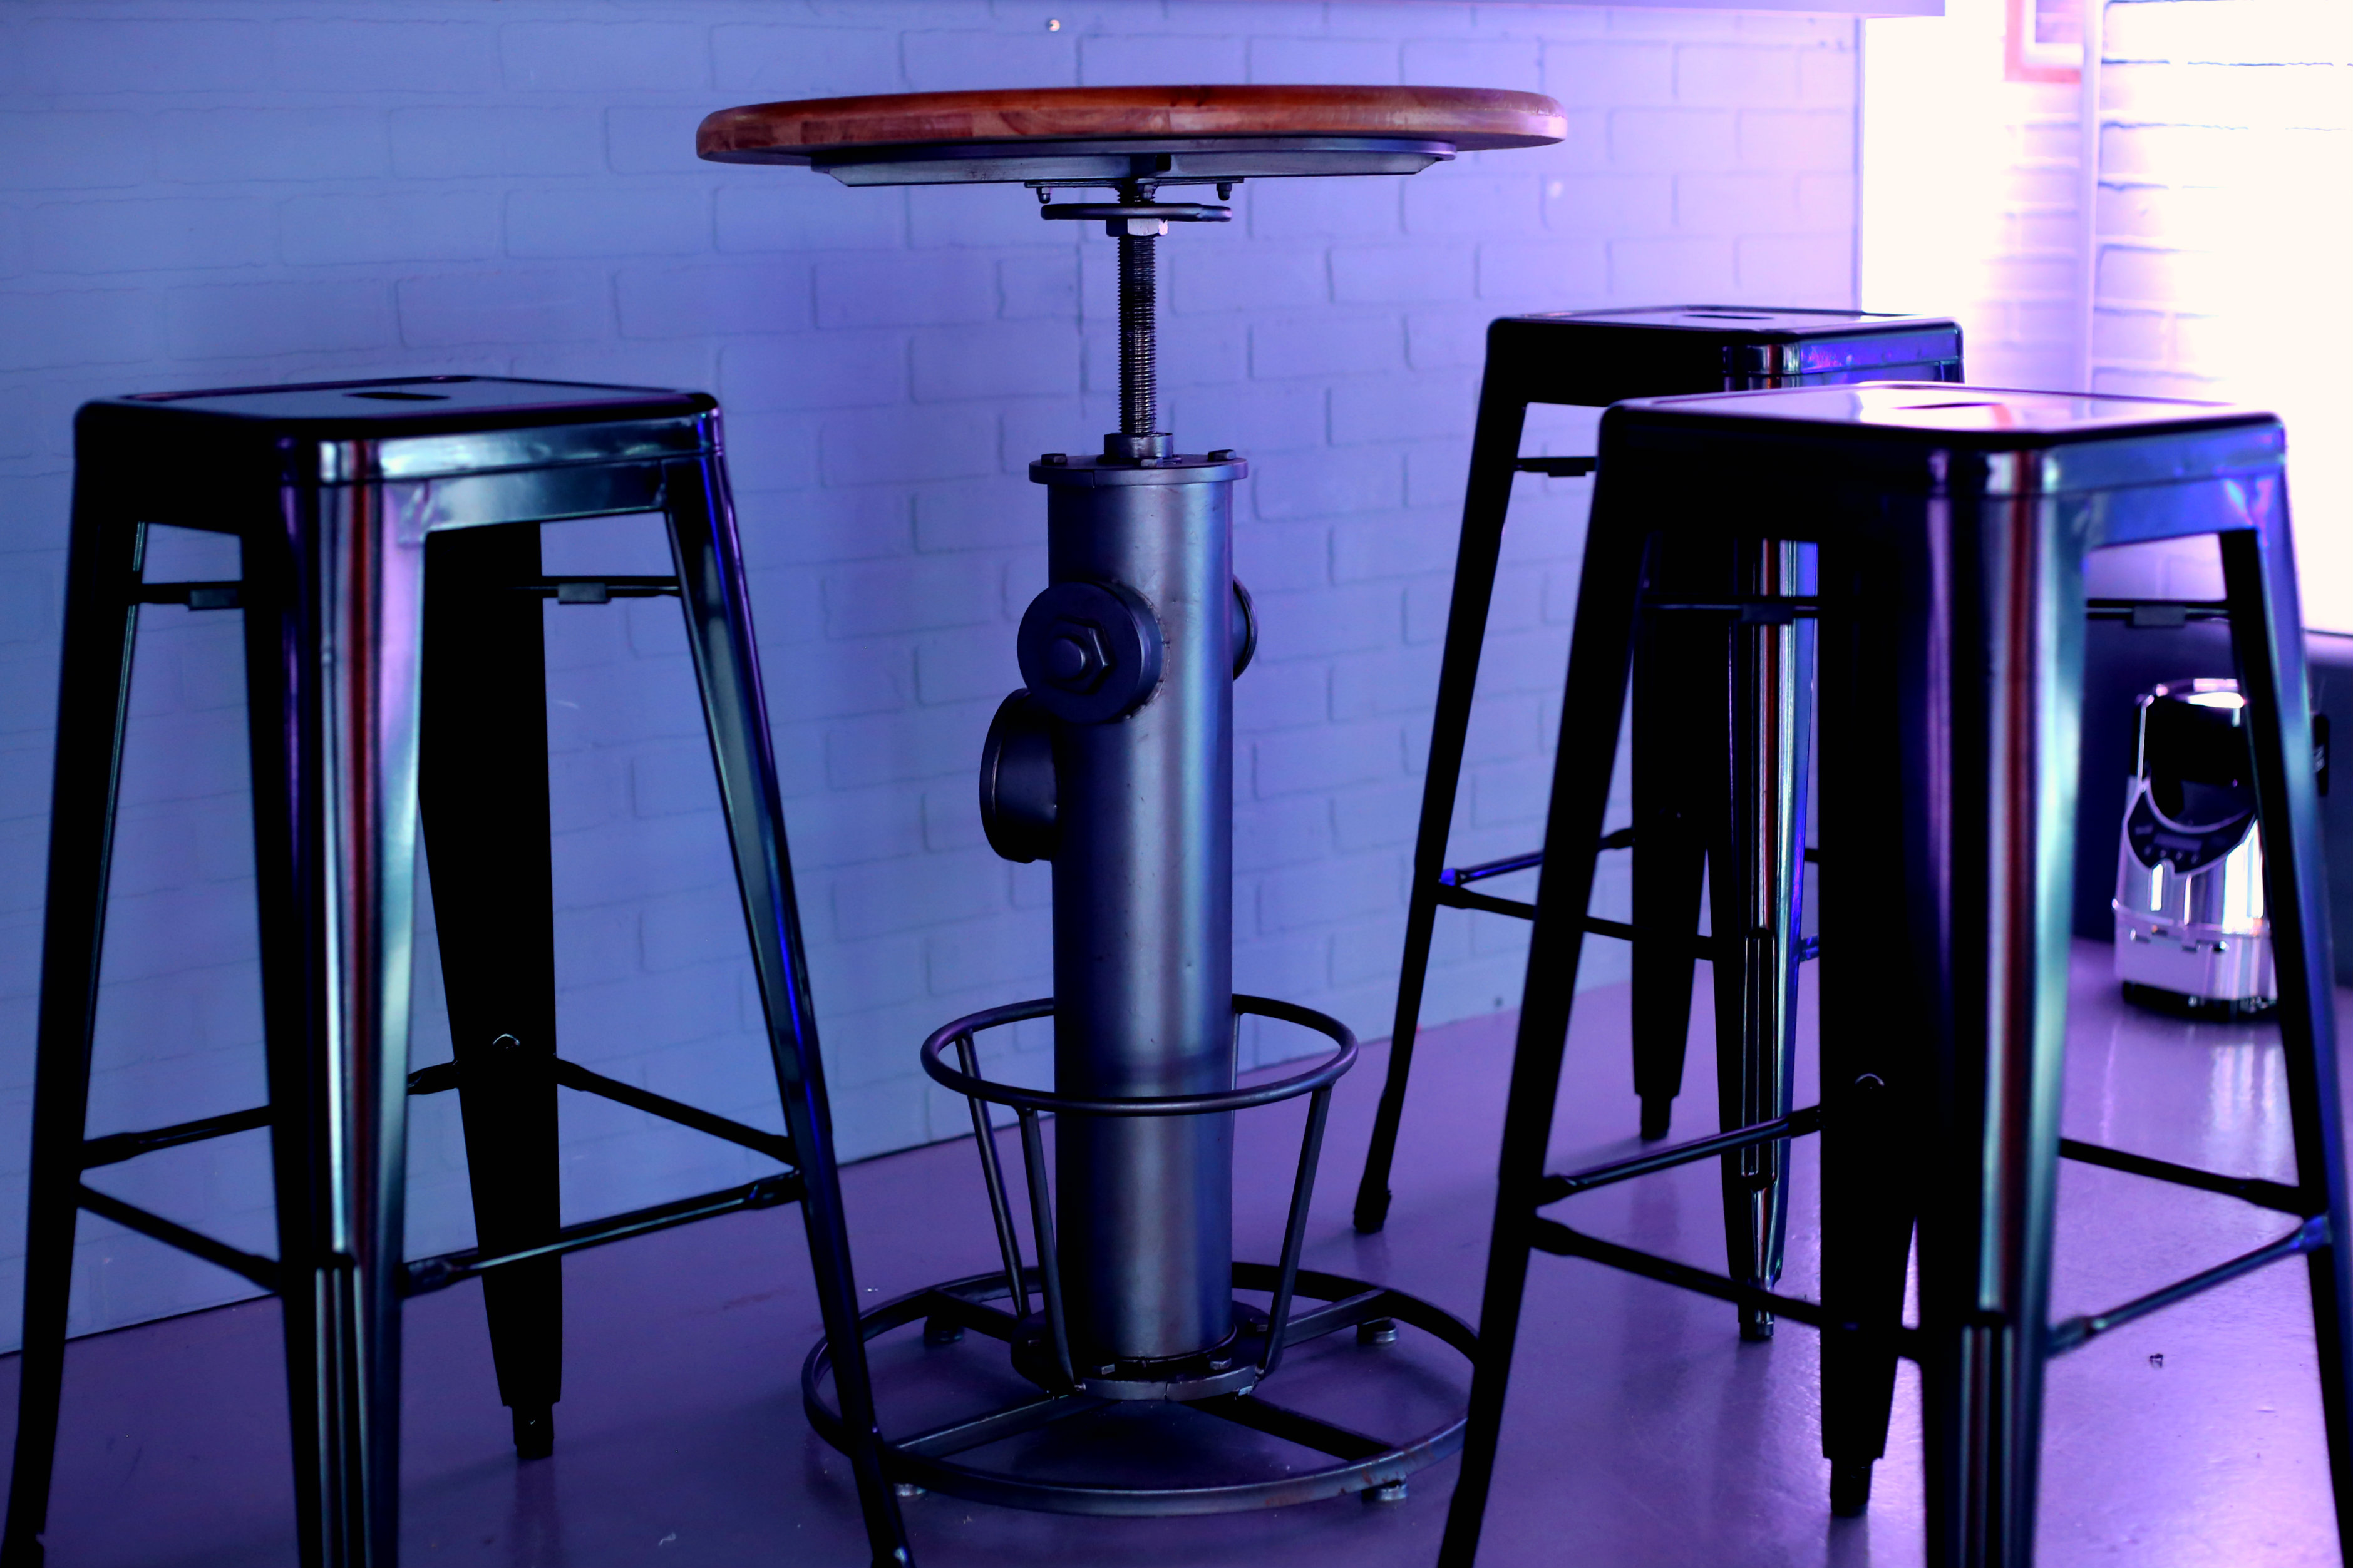 and home bar barools decorative photos counterool phenomenal metal stools backs popular iron breathtaking with fabulous swivel height inspirations wrought stool awesome